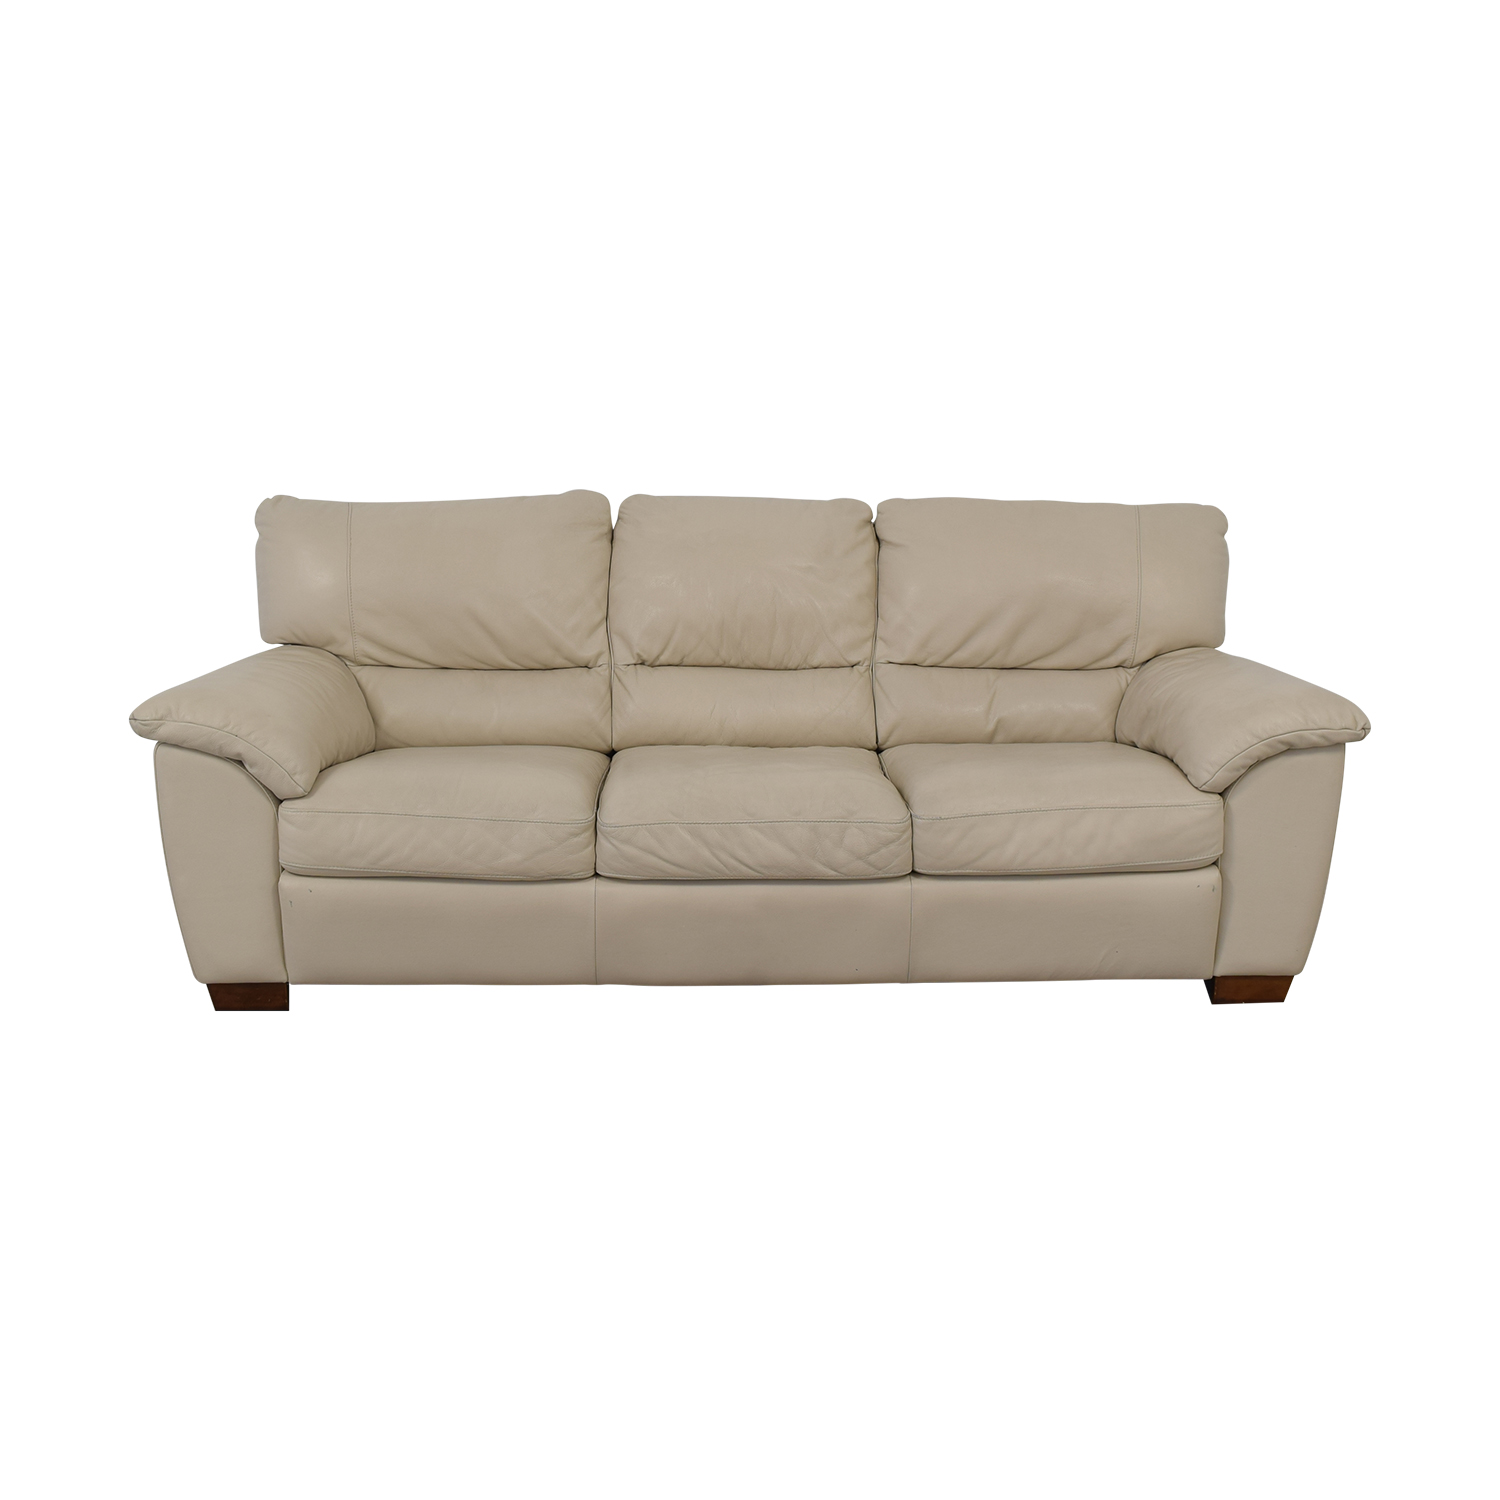 76% OFF - Italsofa Italsofa White Leather Sofa / Sofas